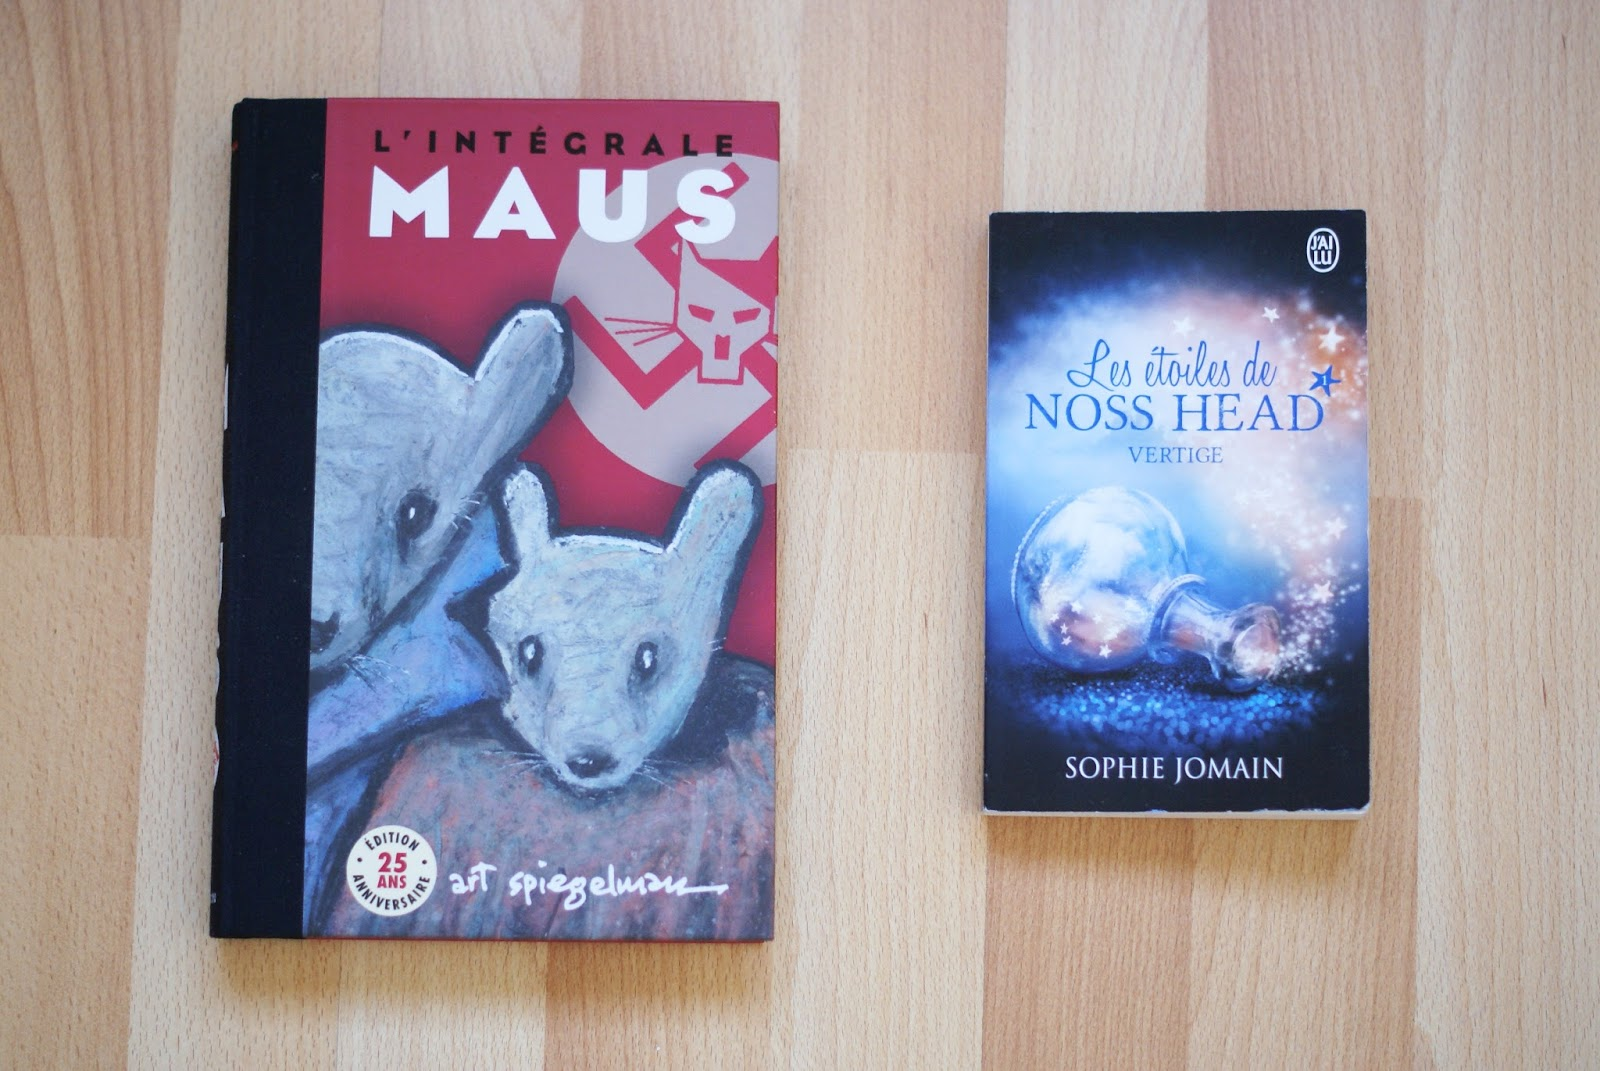 maus noss head books livres lecture reading camomilleblend